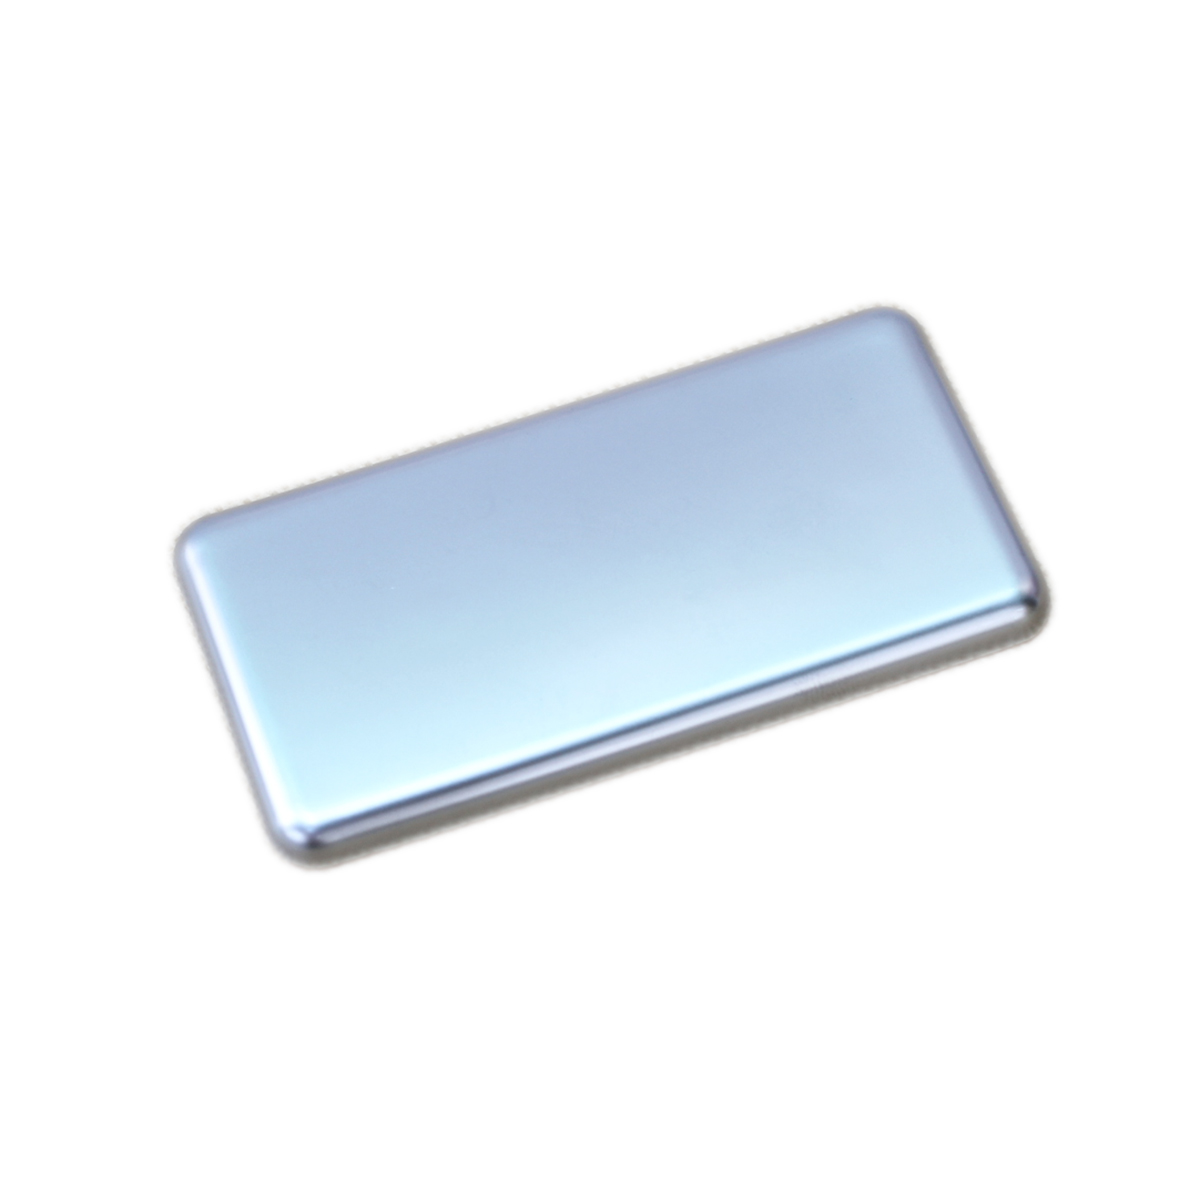 Chrome Copilot Storage Box Switch Handle Cover Trim Fit For <font><b>Nissan</b></font> Rogue Sport <font><b>Qashqai</b></font> J11 2014-2017 2018 2019 <font><b>Accessories</b></font> image